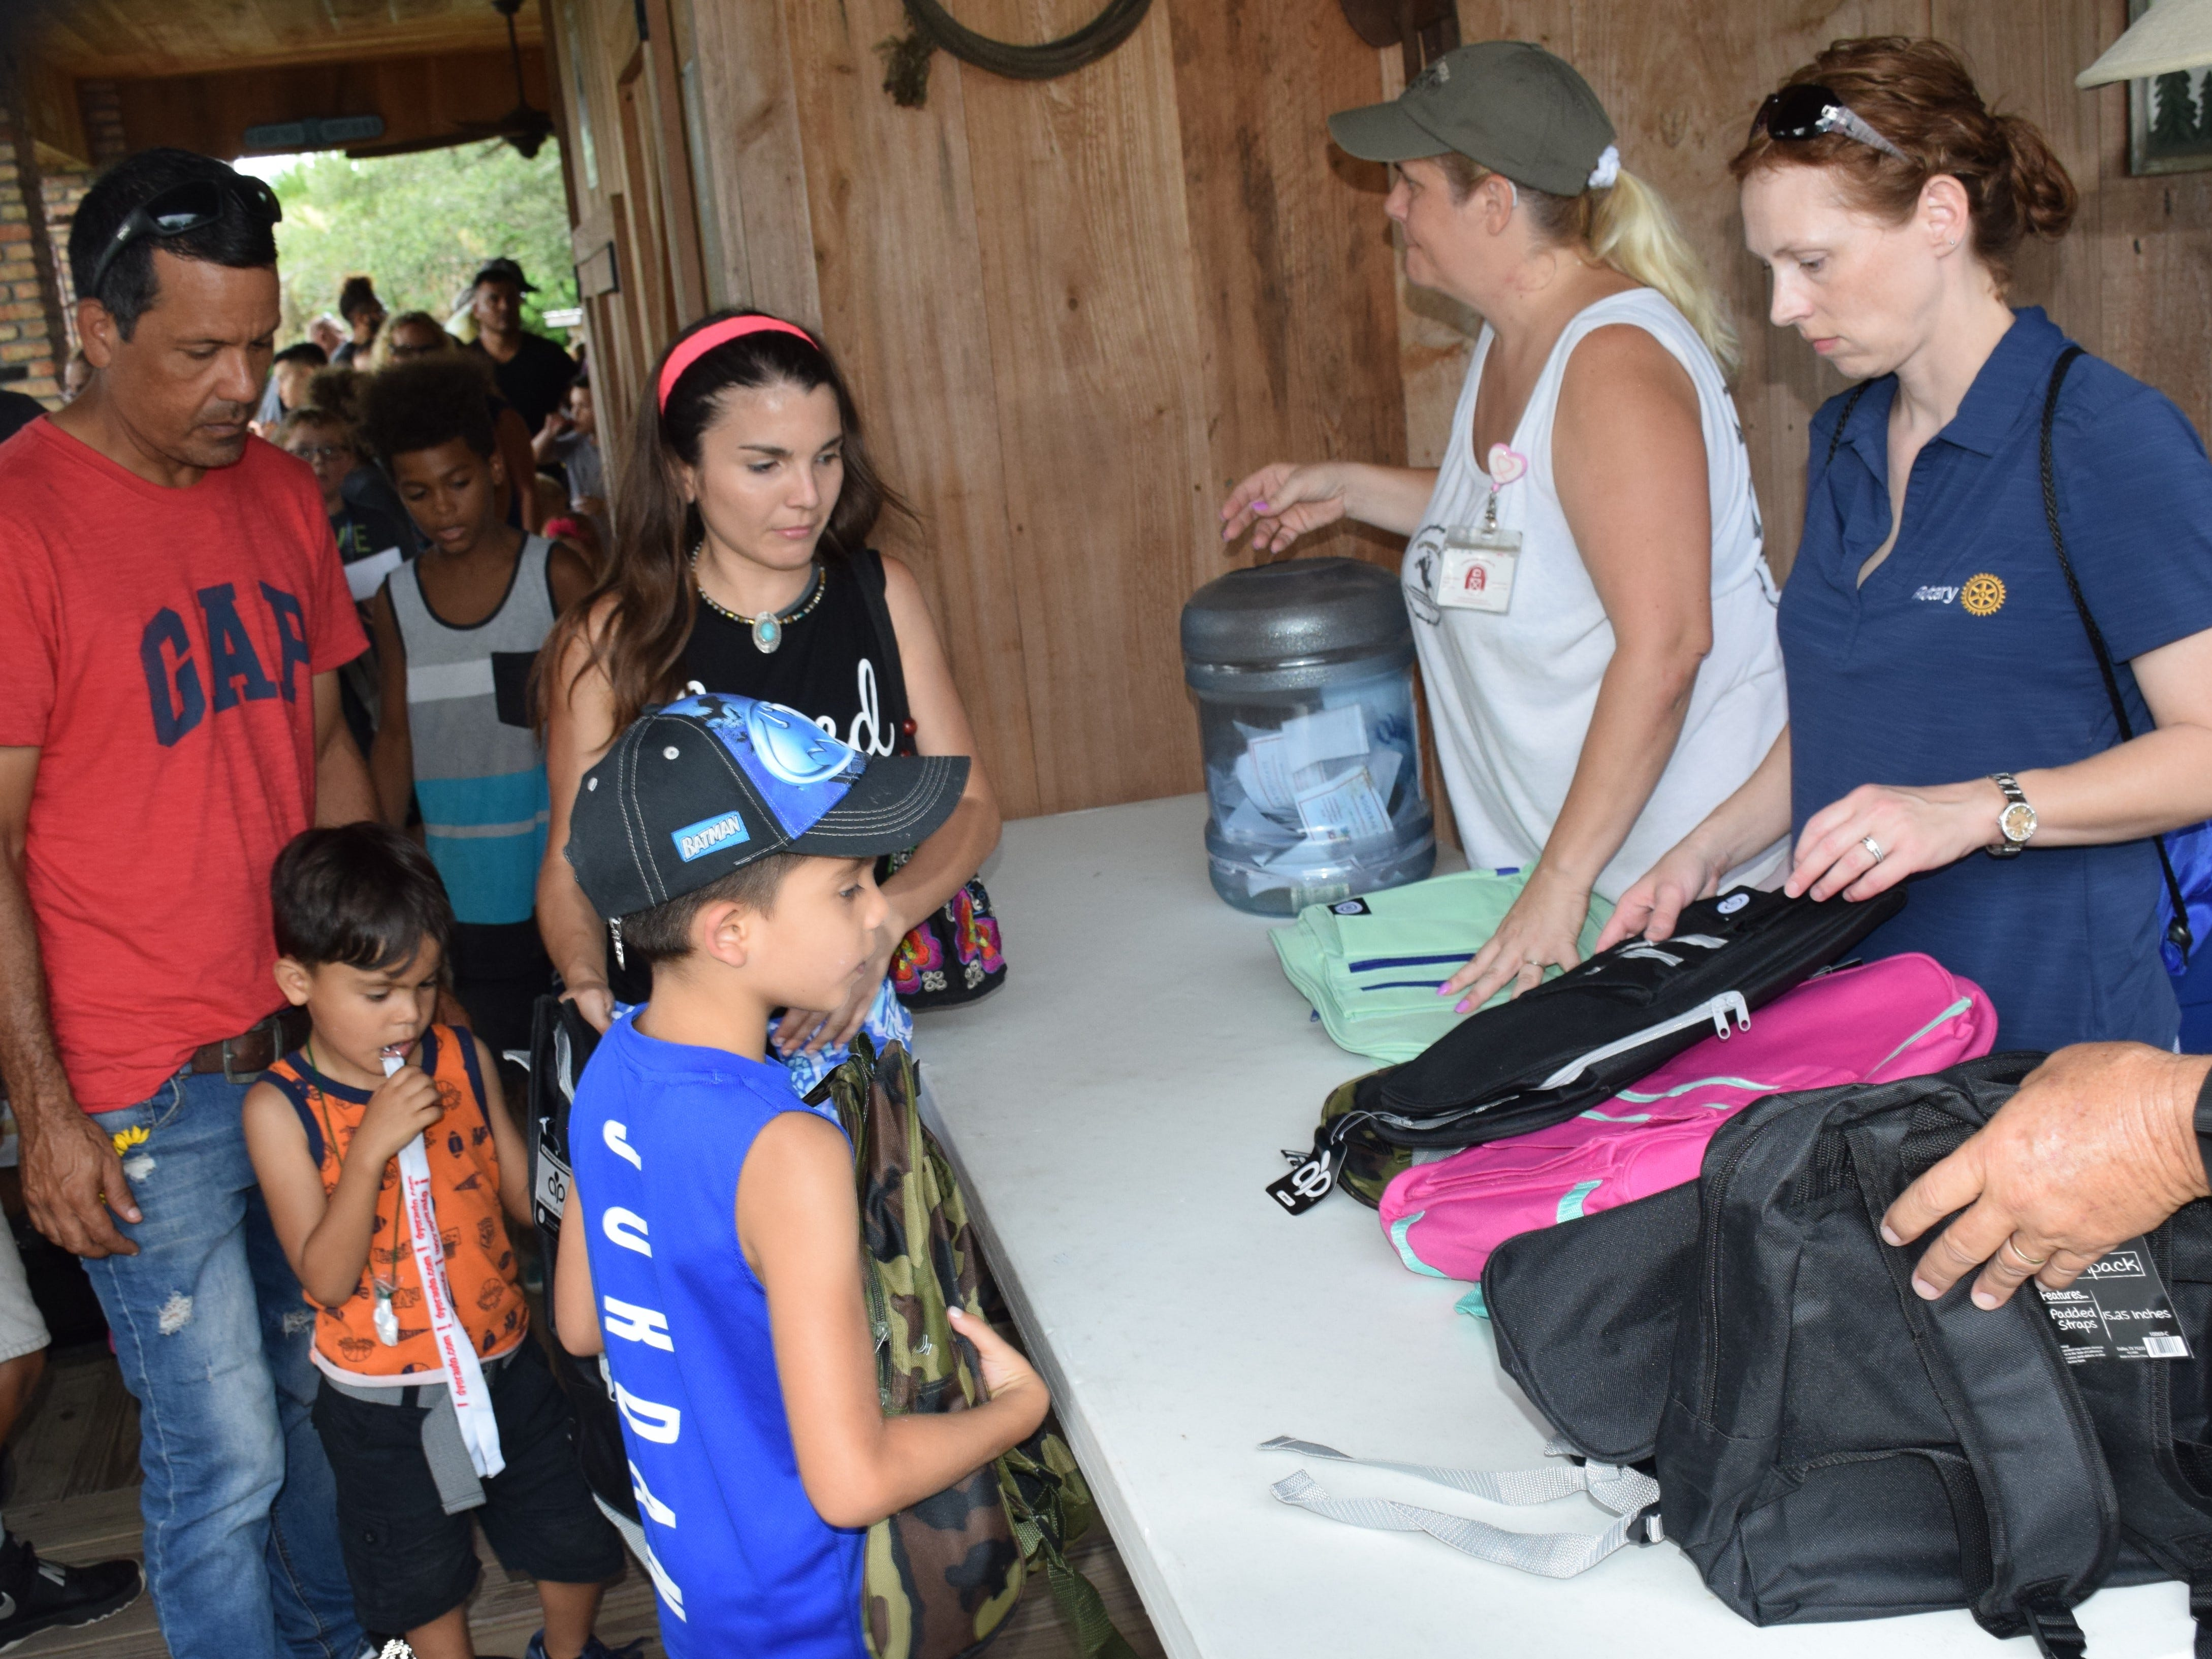 More than 500 backpacks were given away at the event.